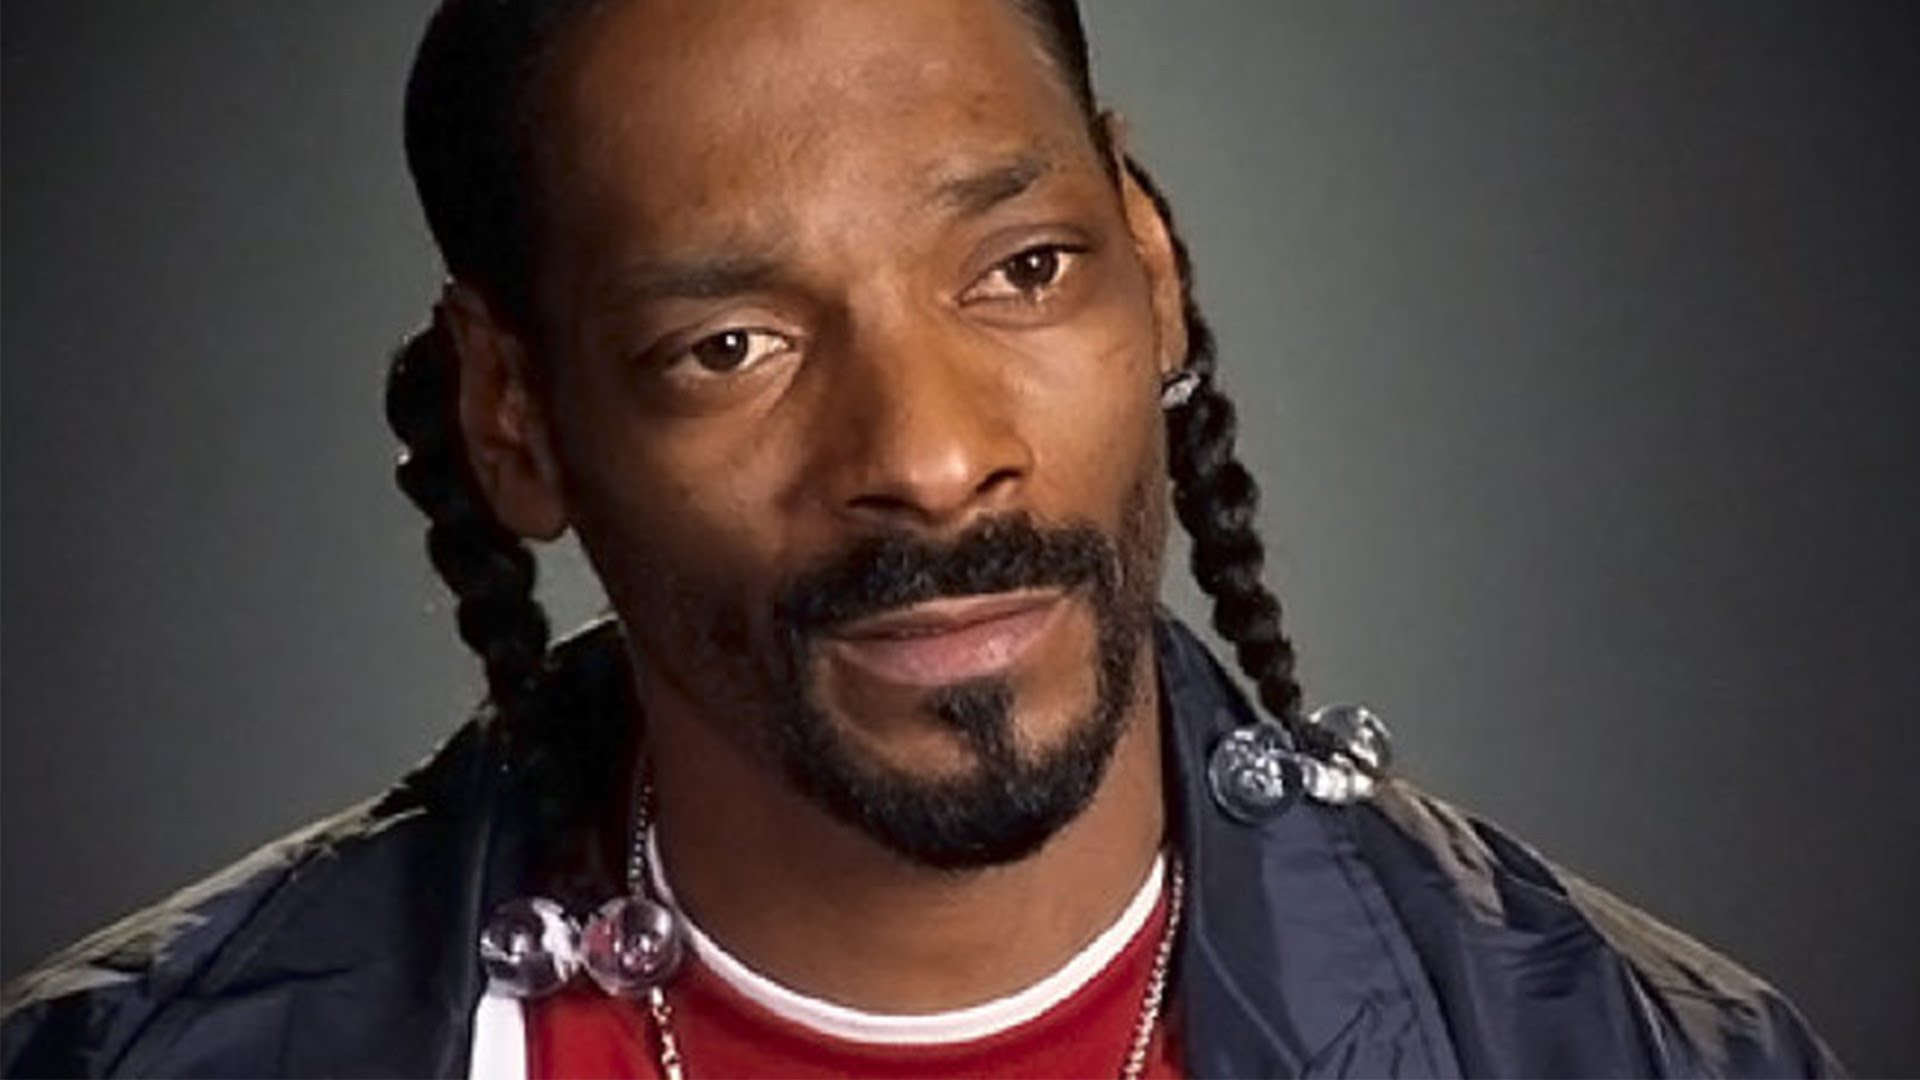 Snoop Dogg Full hd wallpapers